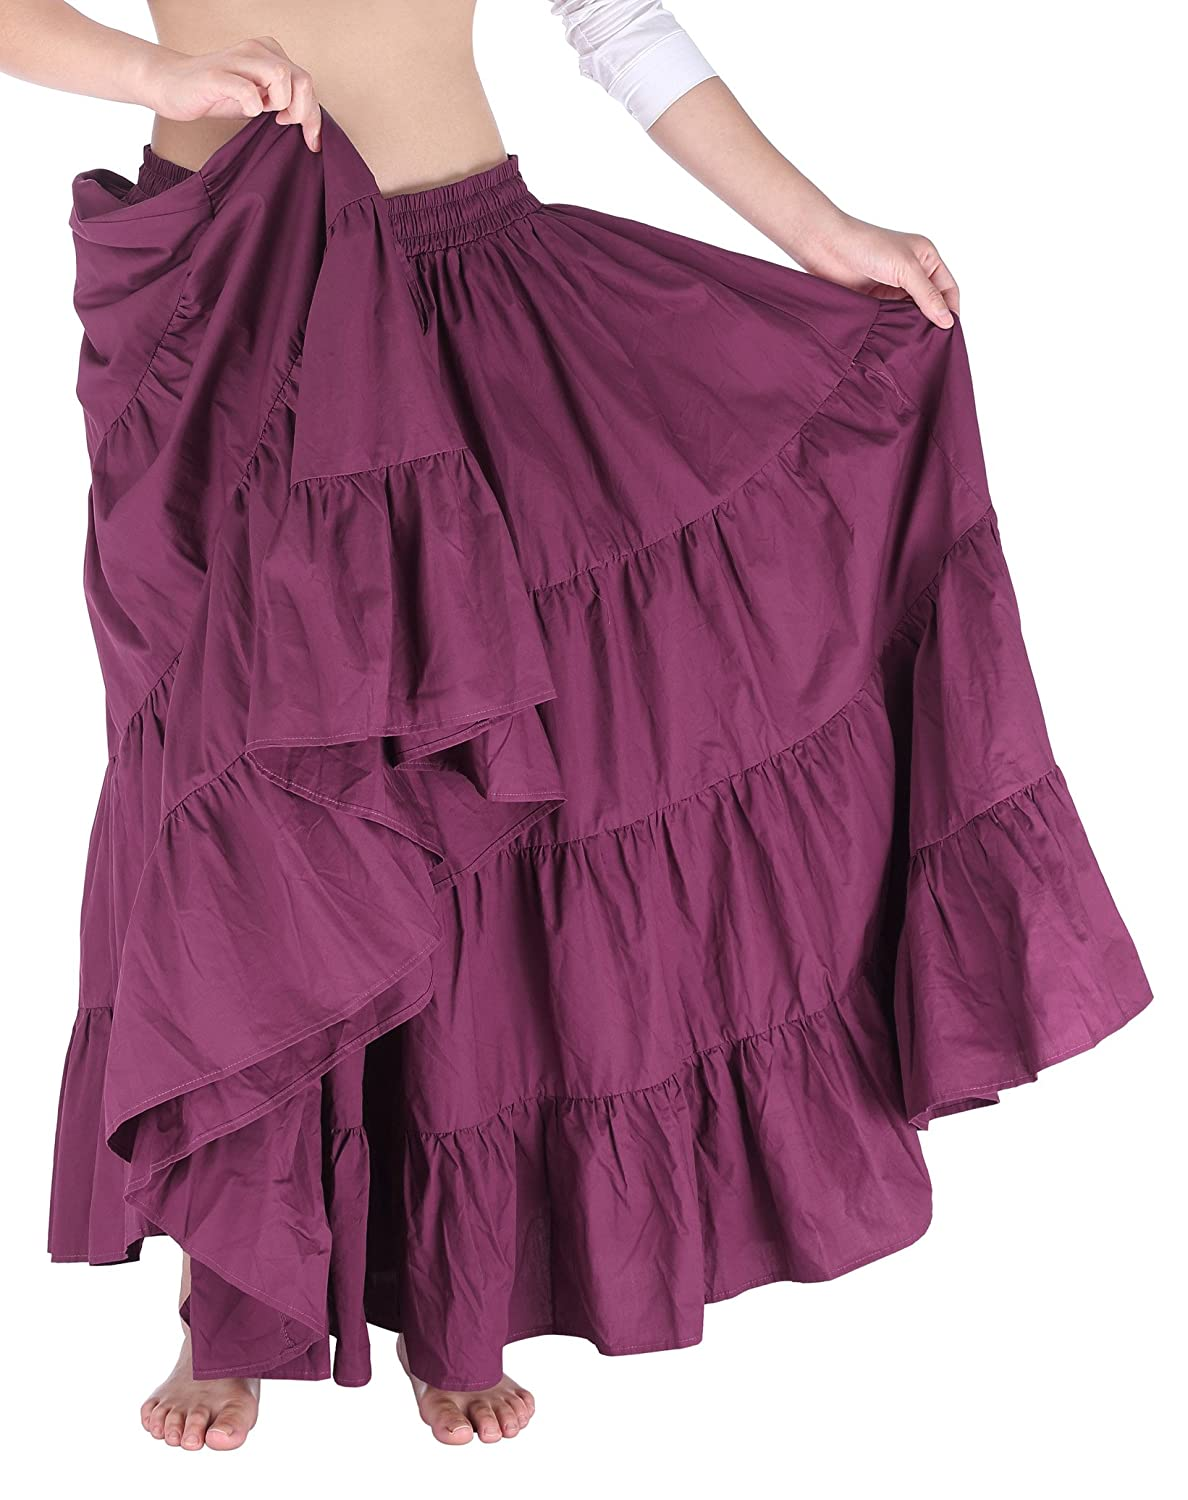 7ad6a124d3 One Size: Waist:30~46 inch; Skirt Length:36.5 inch. Features: Waistline is  well elastic; Draw string around waist; Comfortable cotton fabric; Super  wide hem